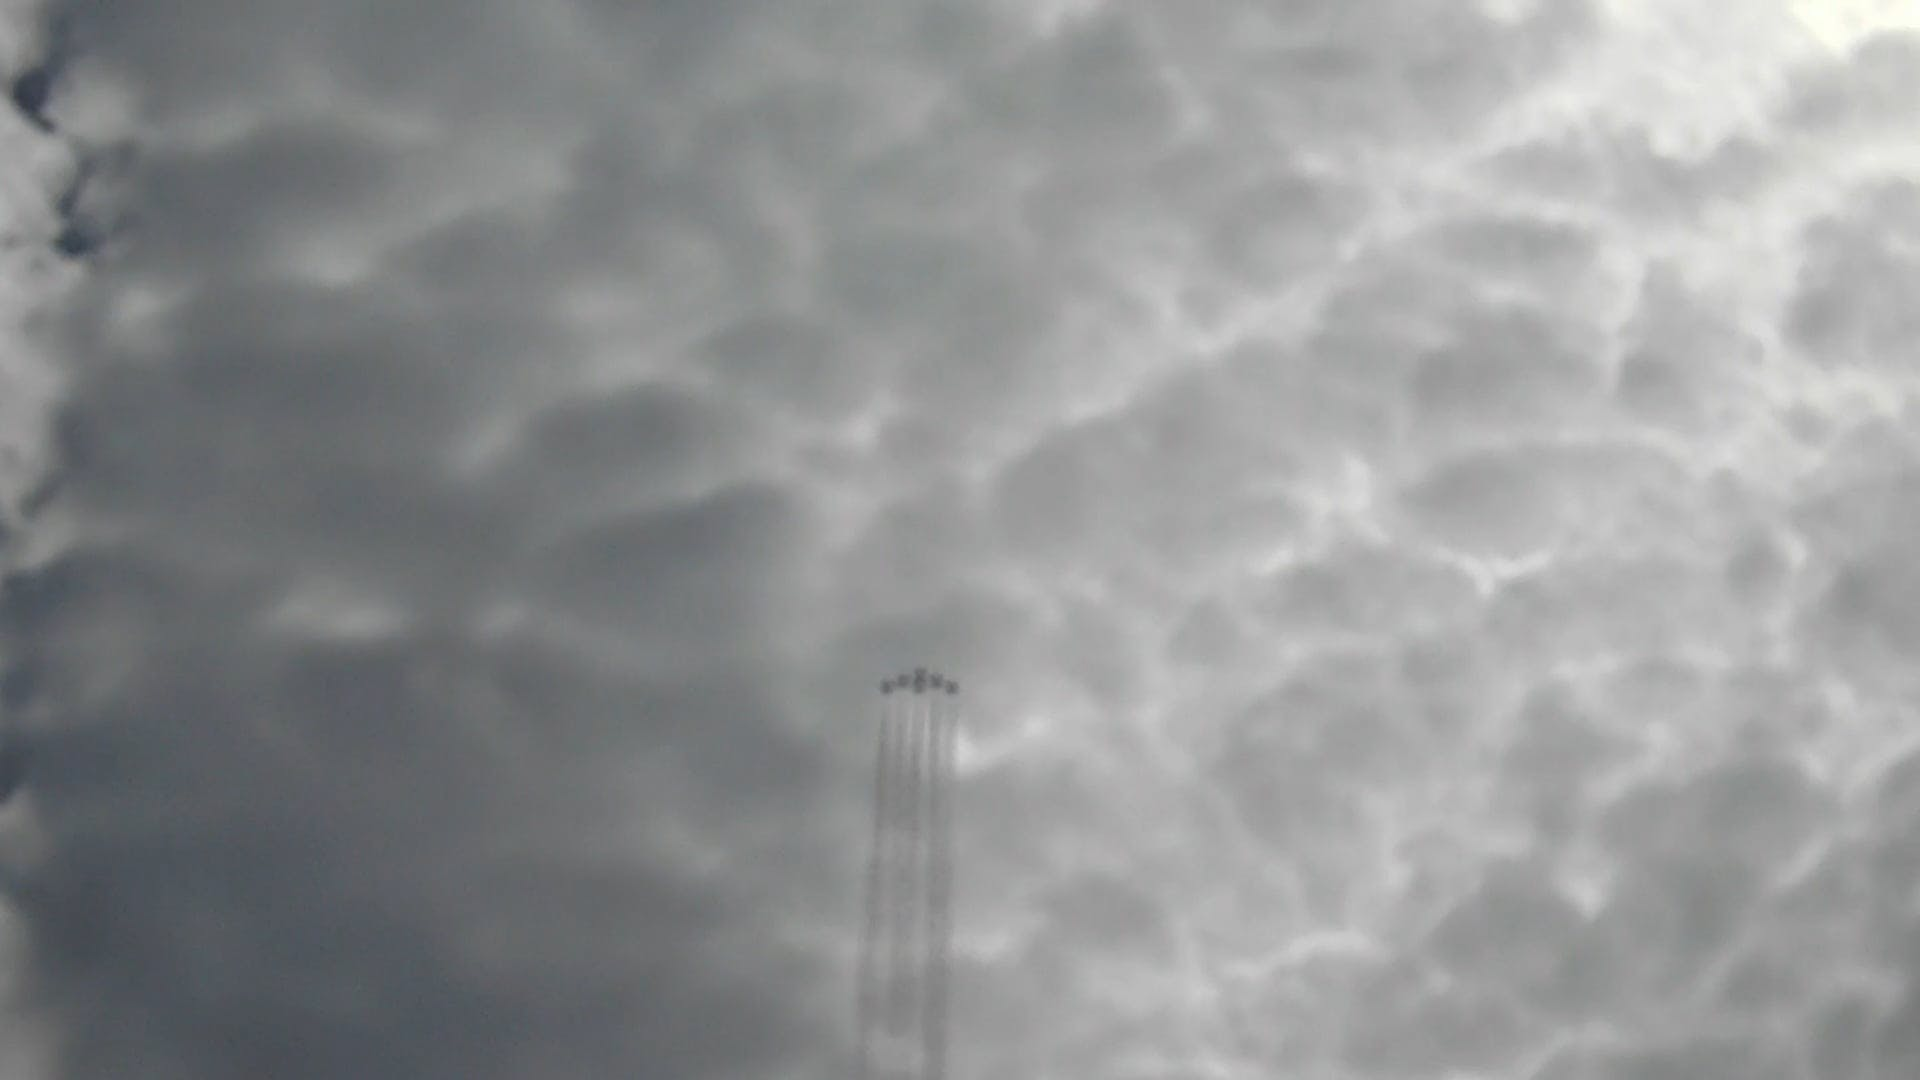 Air Show Of Jet Fighters On A Cloudy Sky